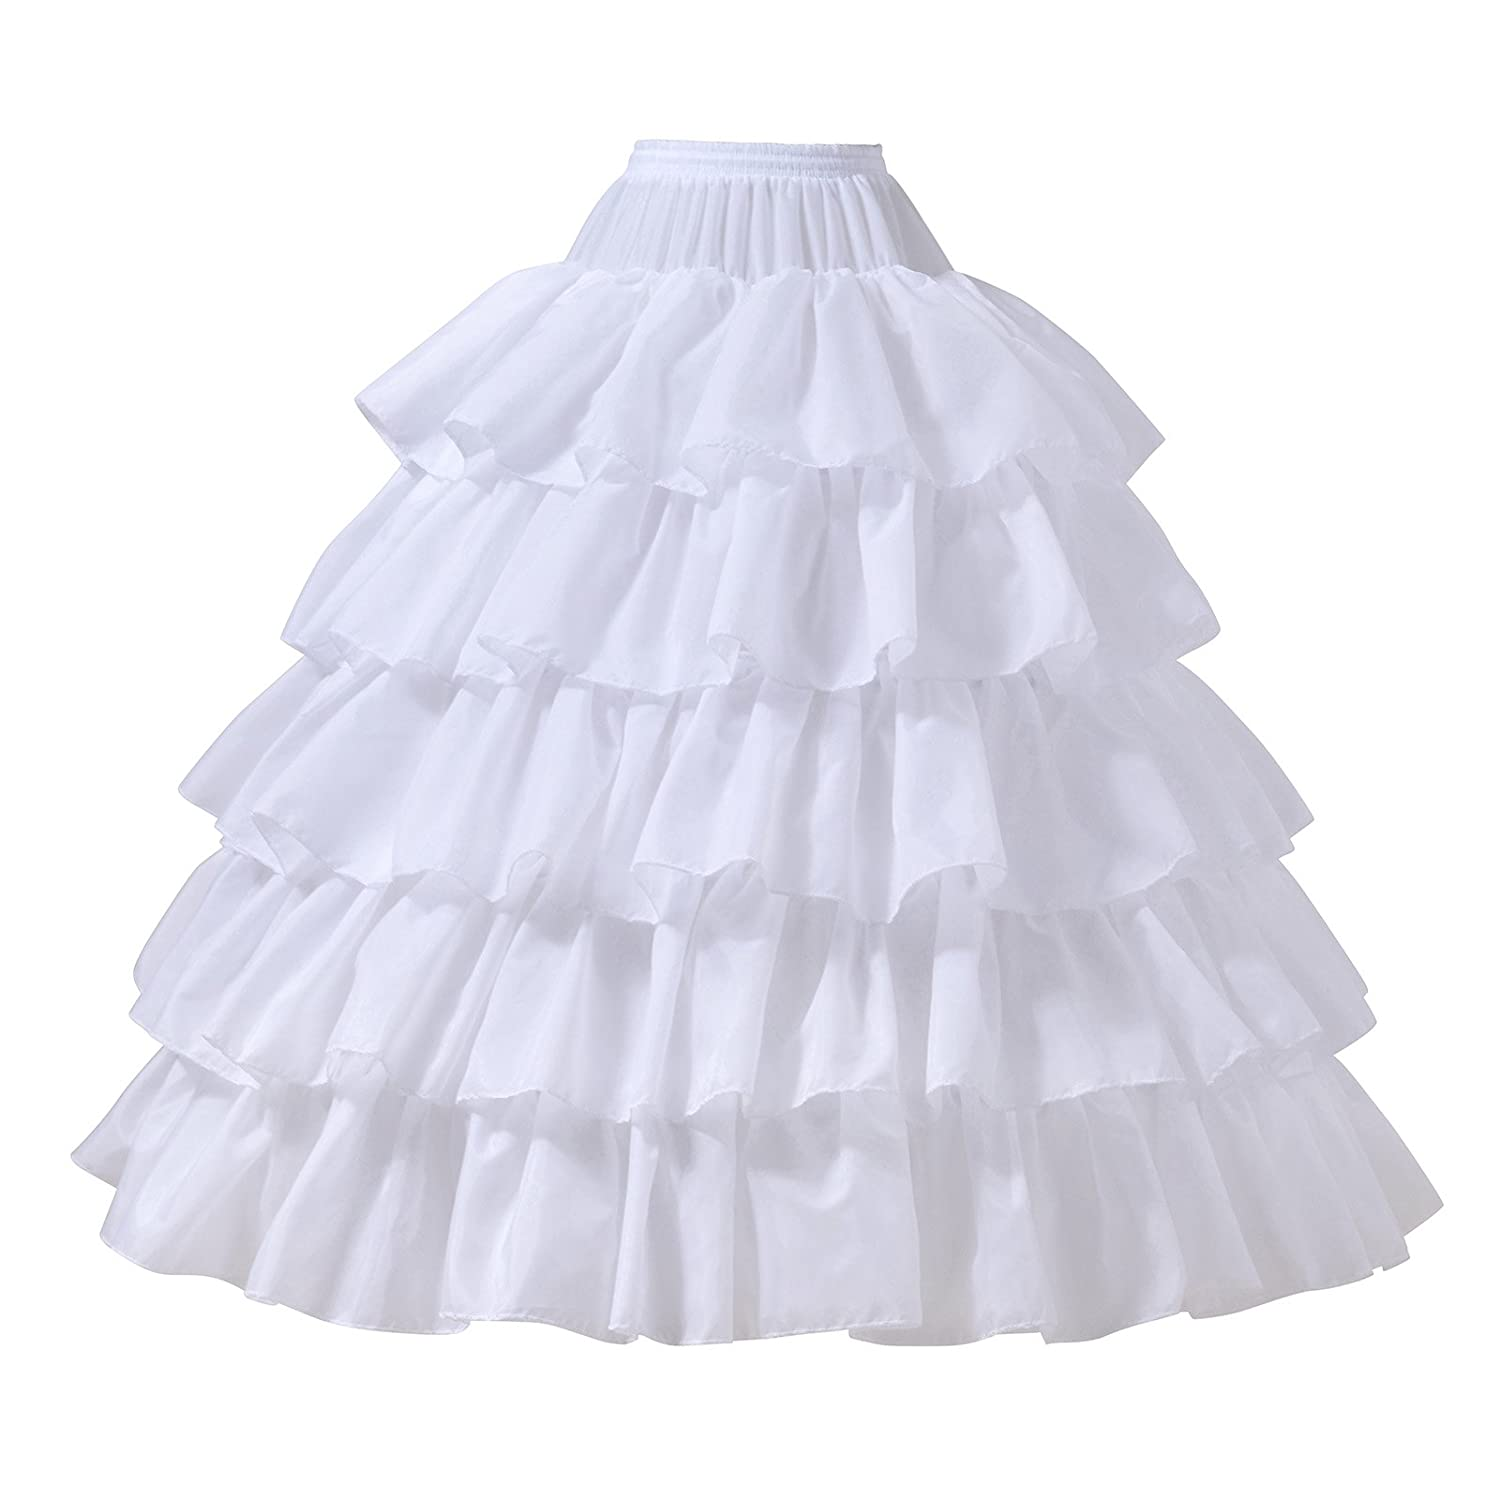 AWEI 4 Hoops Wedding Ball Gown Petticoat Skirt 6 Layers Slip Crinoline Underskirt AWPPQC100004CPUS